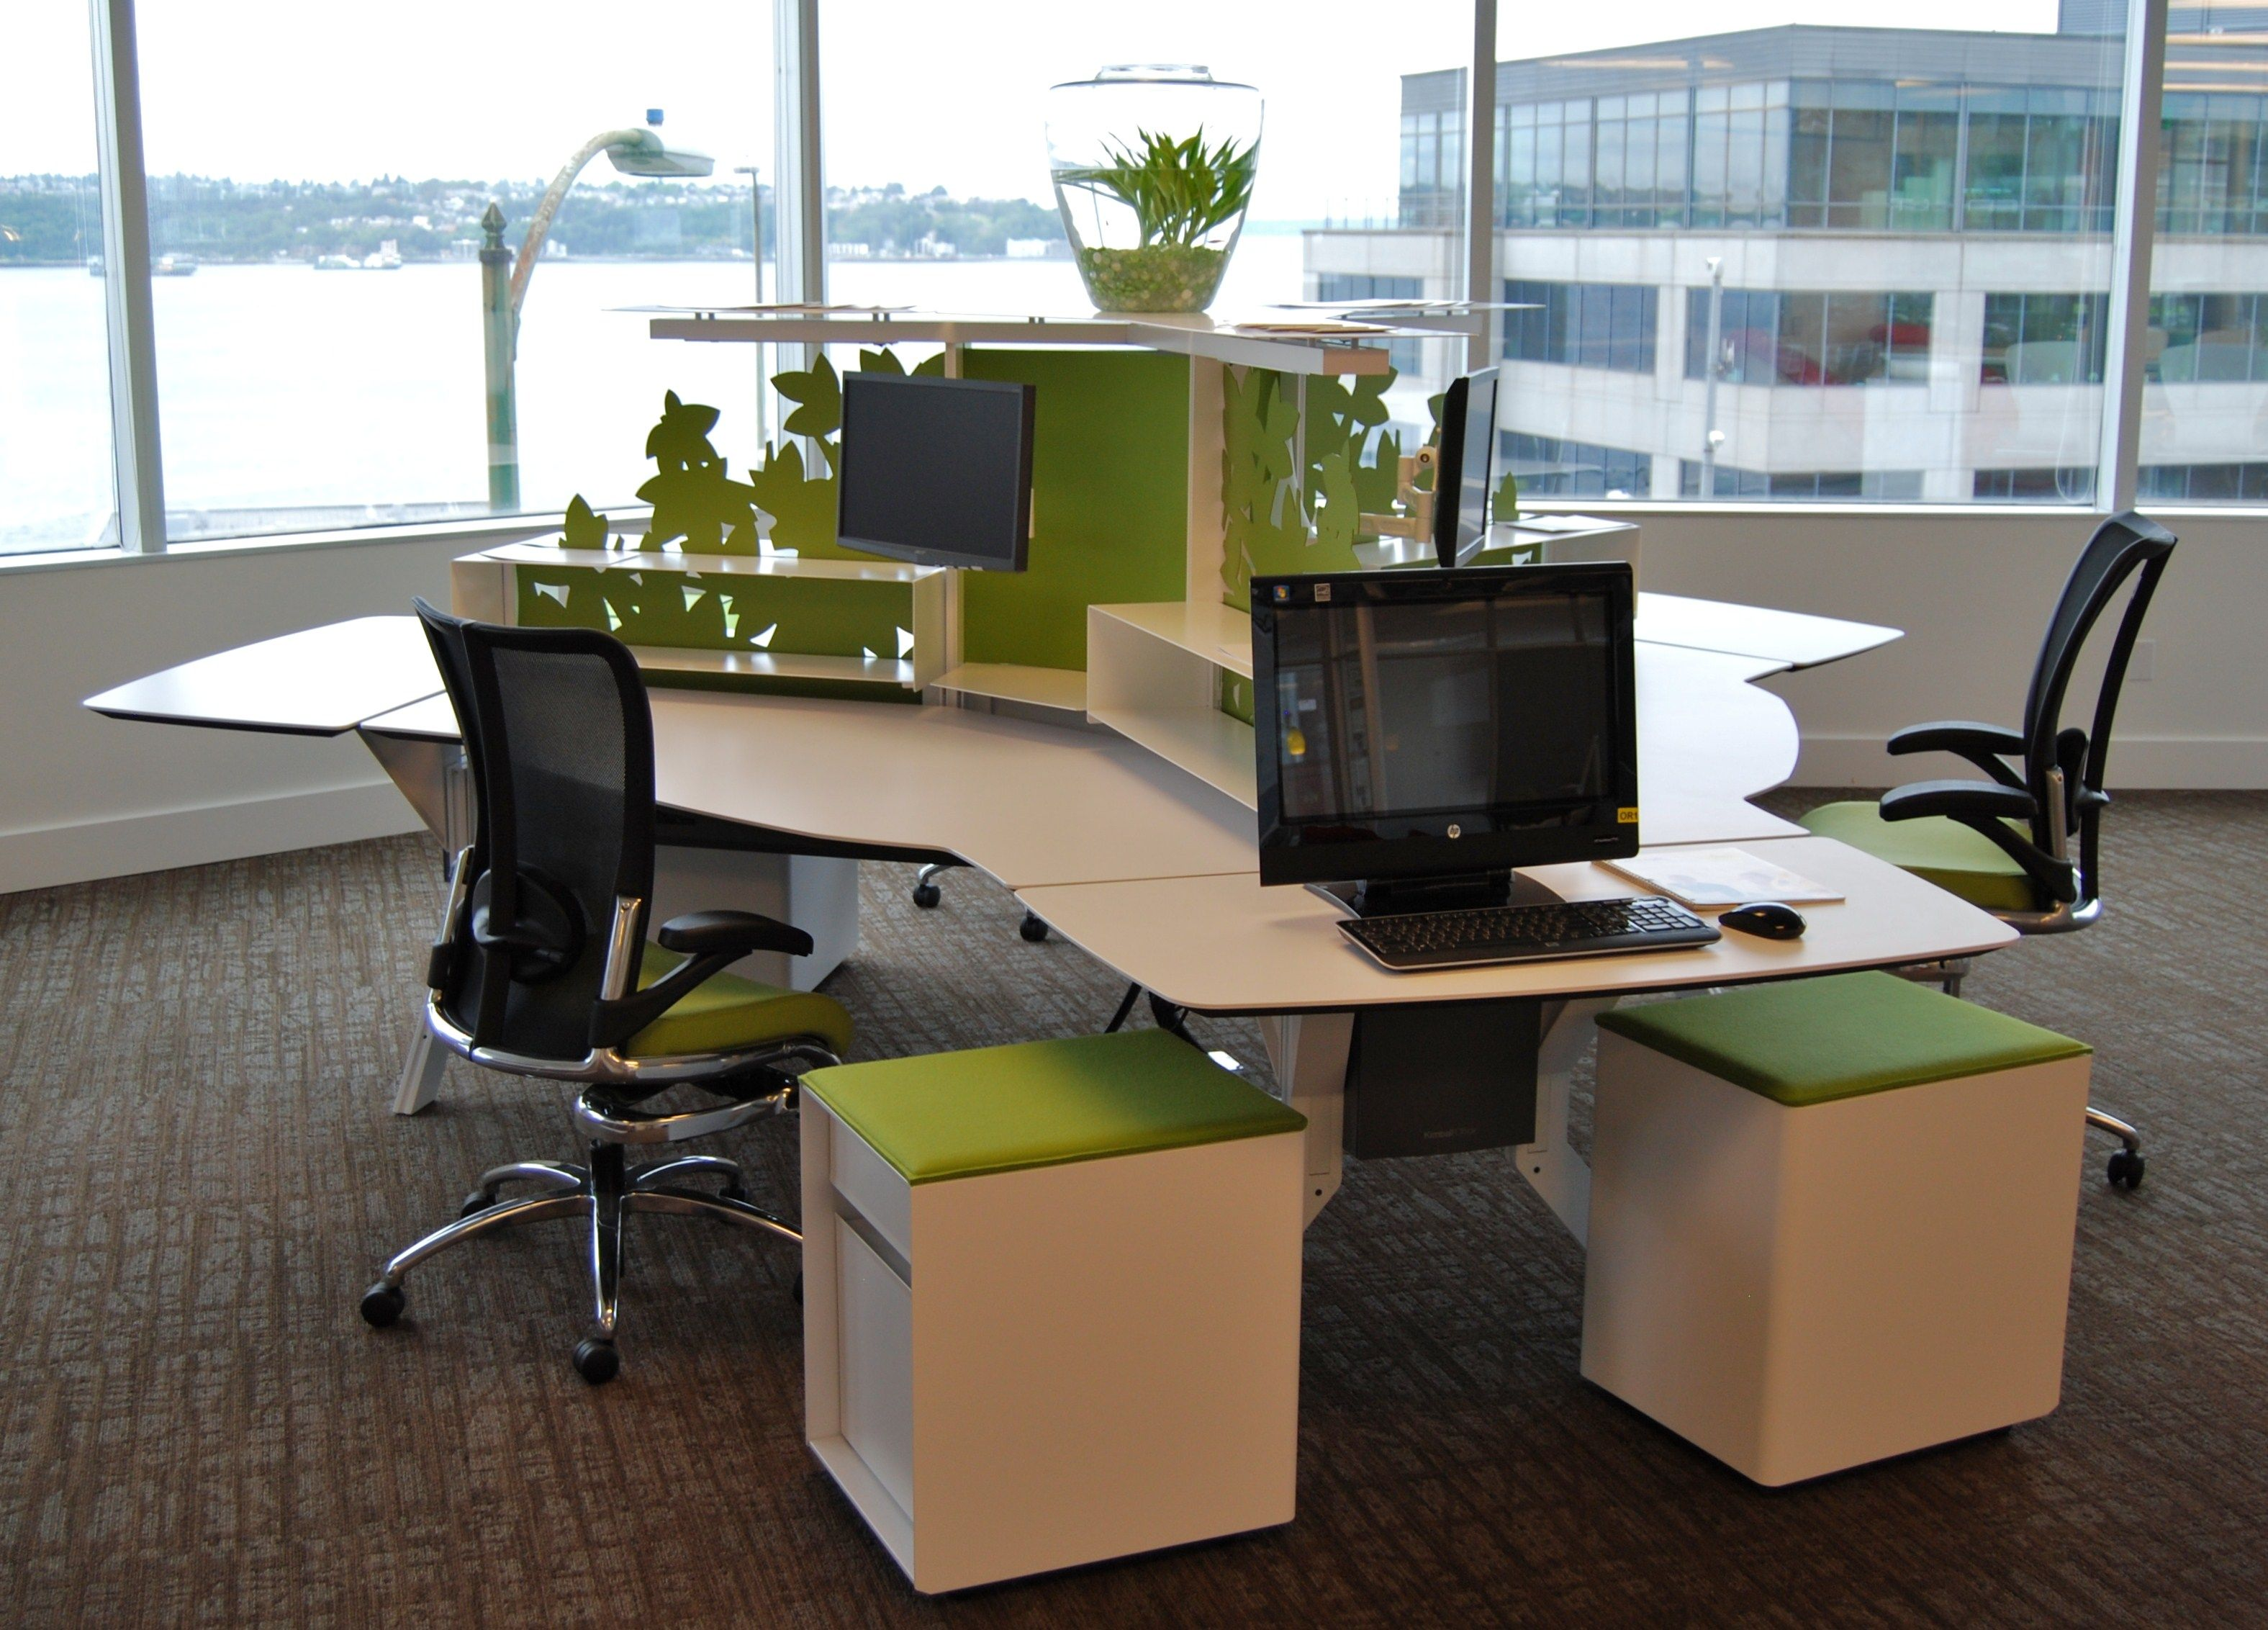 furniture for office space. Furniture For Office Space. Green Offices Boost Your Brainpower! Space B .